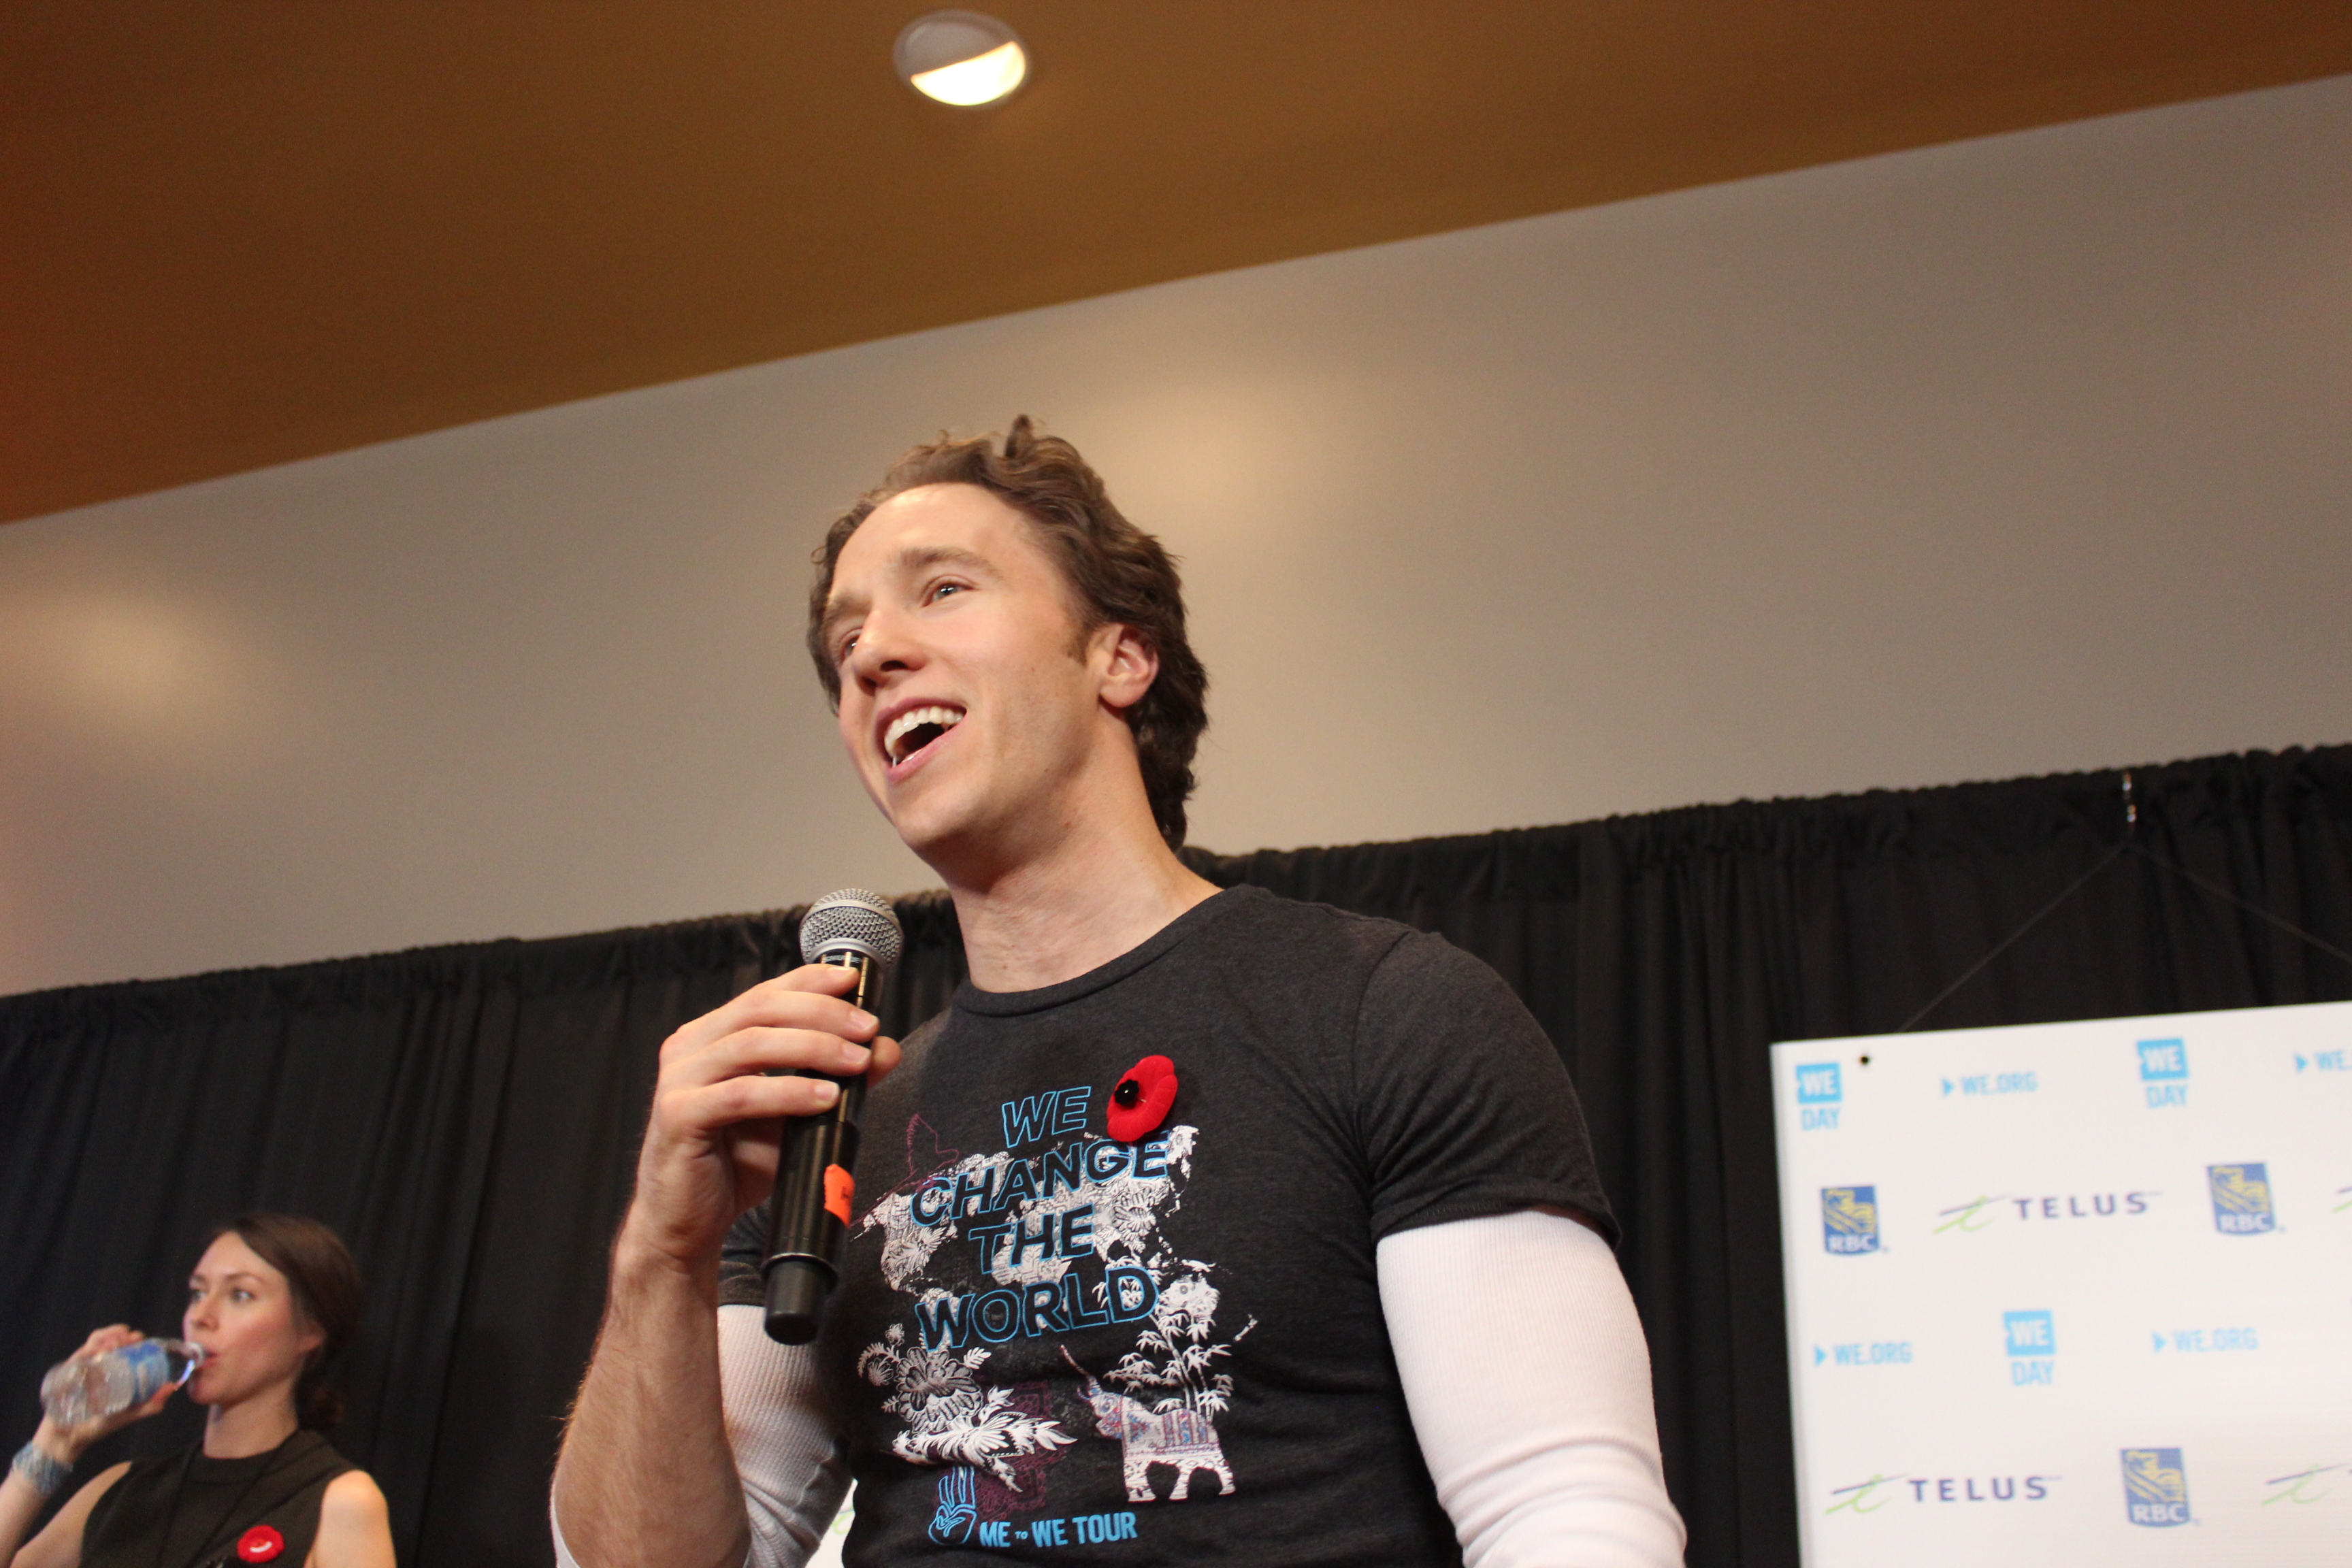 Craig Kielburger, founder of We Day, Free the Children and Me to We.